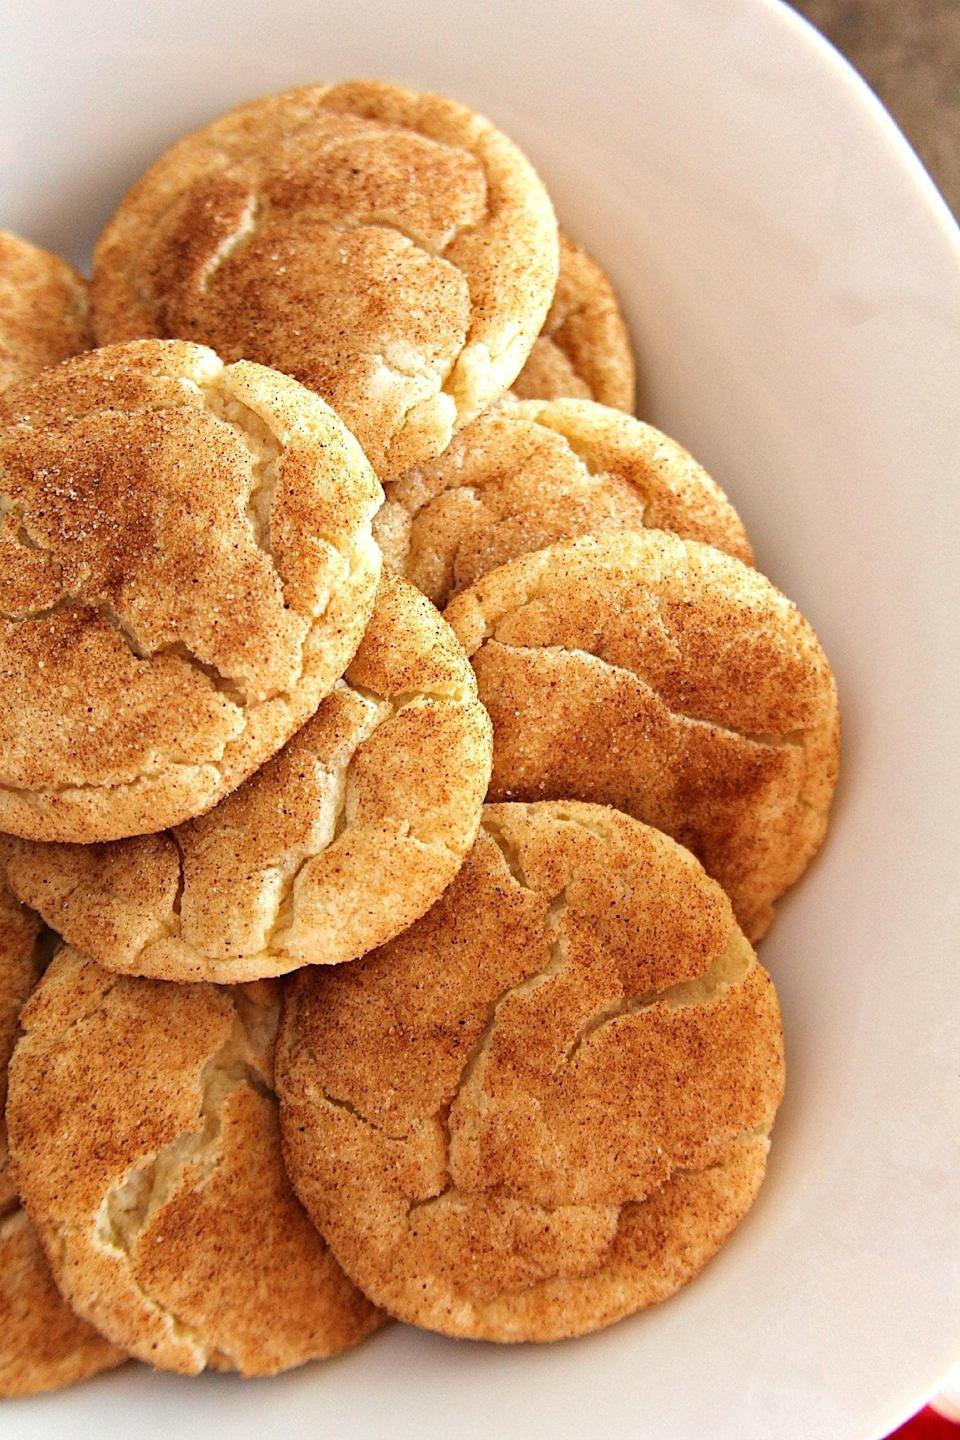 "<p>Californians are craving cinnamon-dusted cookies, and we have no choice but to stan. Snickerdoodles are seriously good, so we know they're doing something right.</p> <p><strong>Get the recipe</strong>: <a href=""https://www.popsugar.com/food/Disneyland-Snickerdoodle-Cookie-Recipe-38151277"" class=""link rapid-noclick-resp"" rel=""nofollow noopener"" target=""_blank"" data-ylk=""slk:snickerdoodles"">snickerdoodles</a></p>"